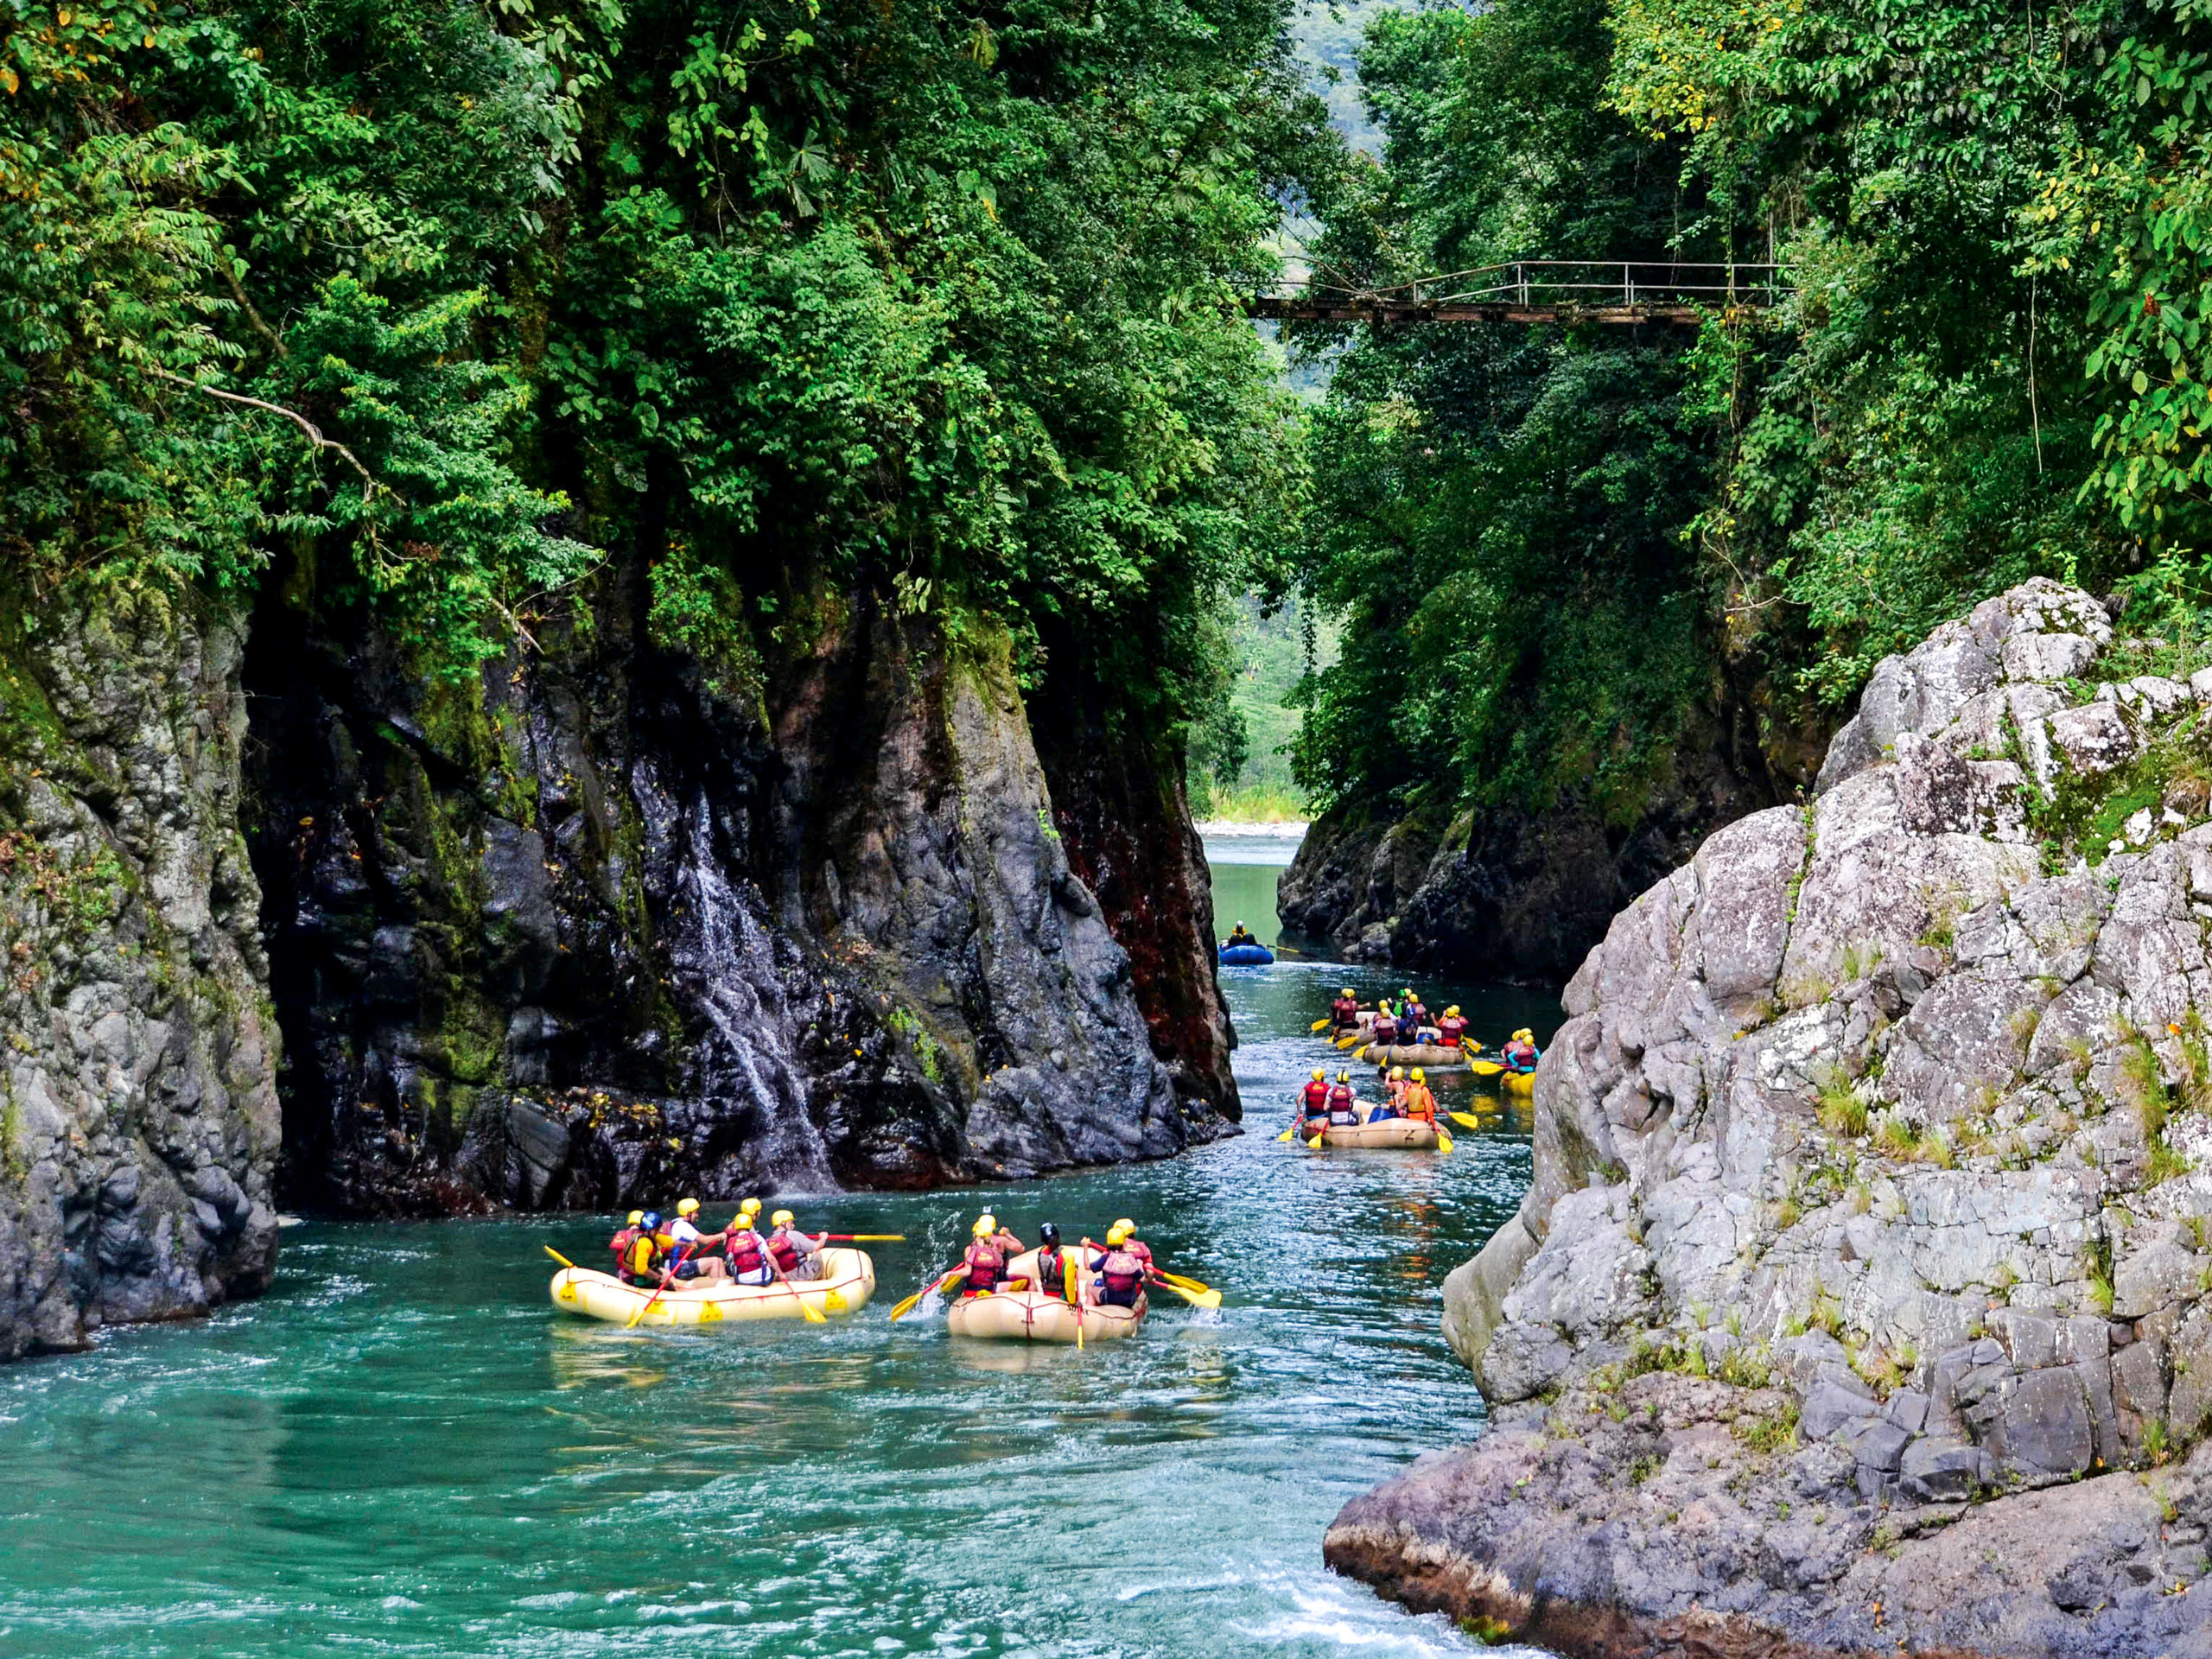 Tropical forest rafting on a rocky river